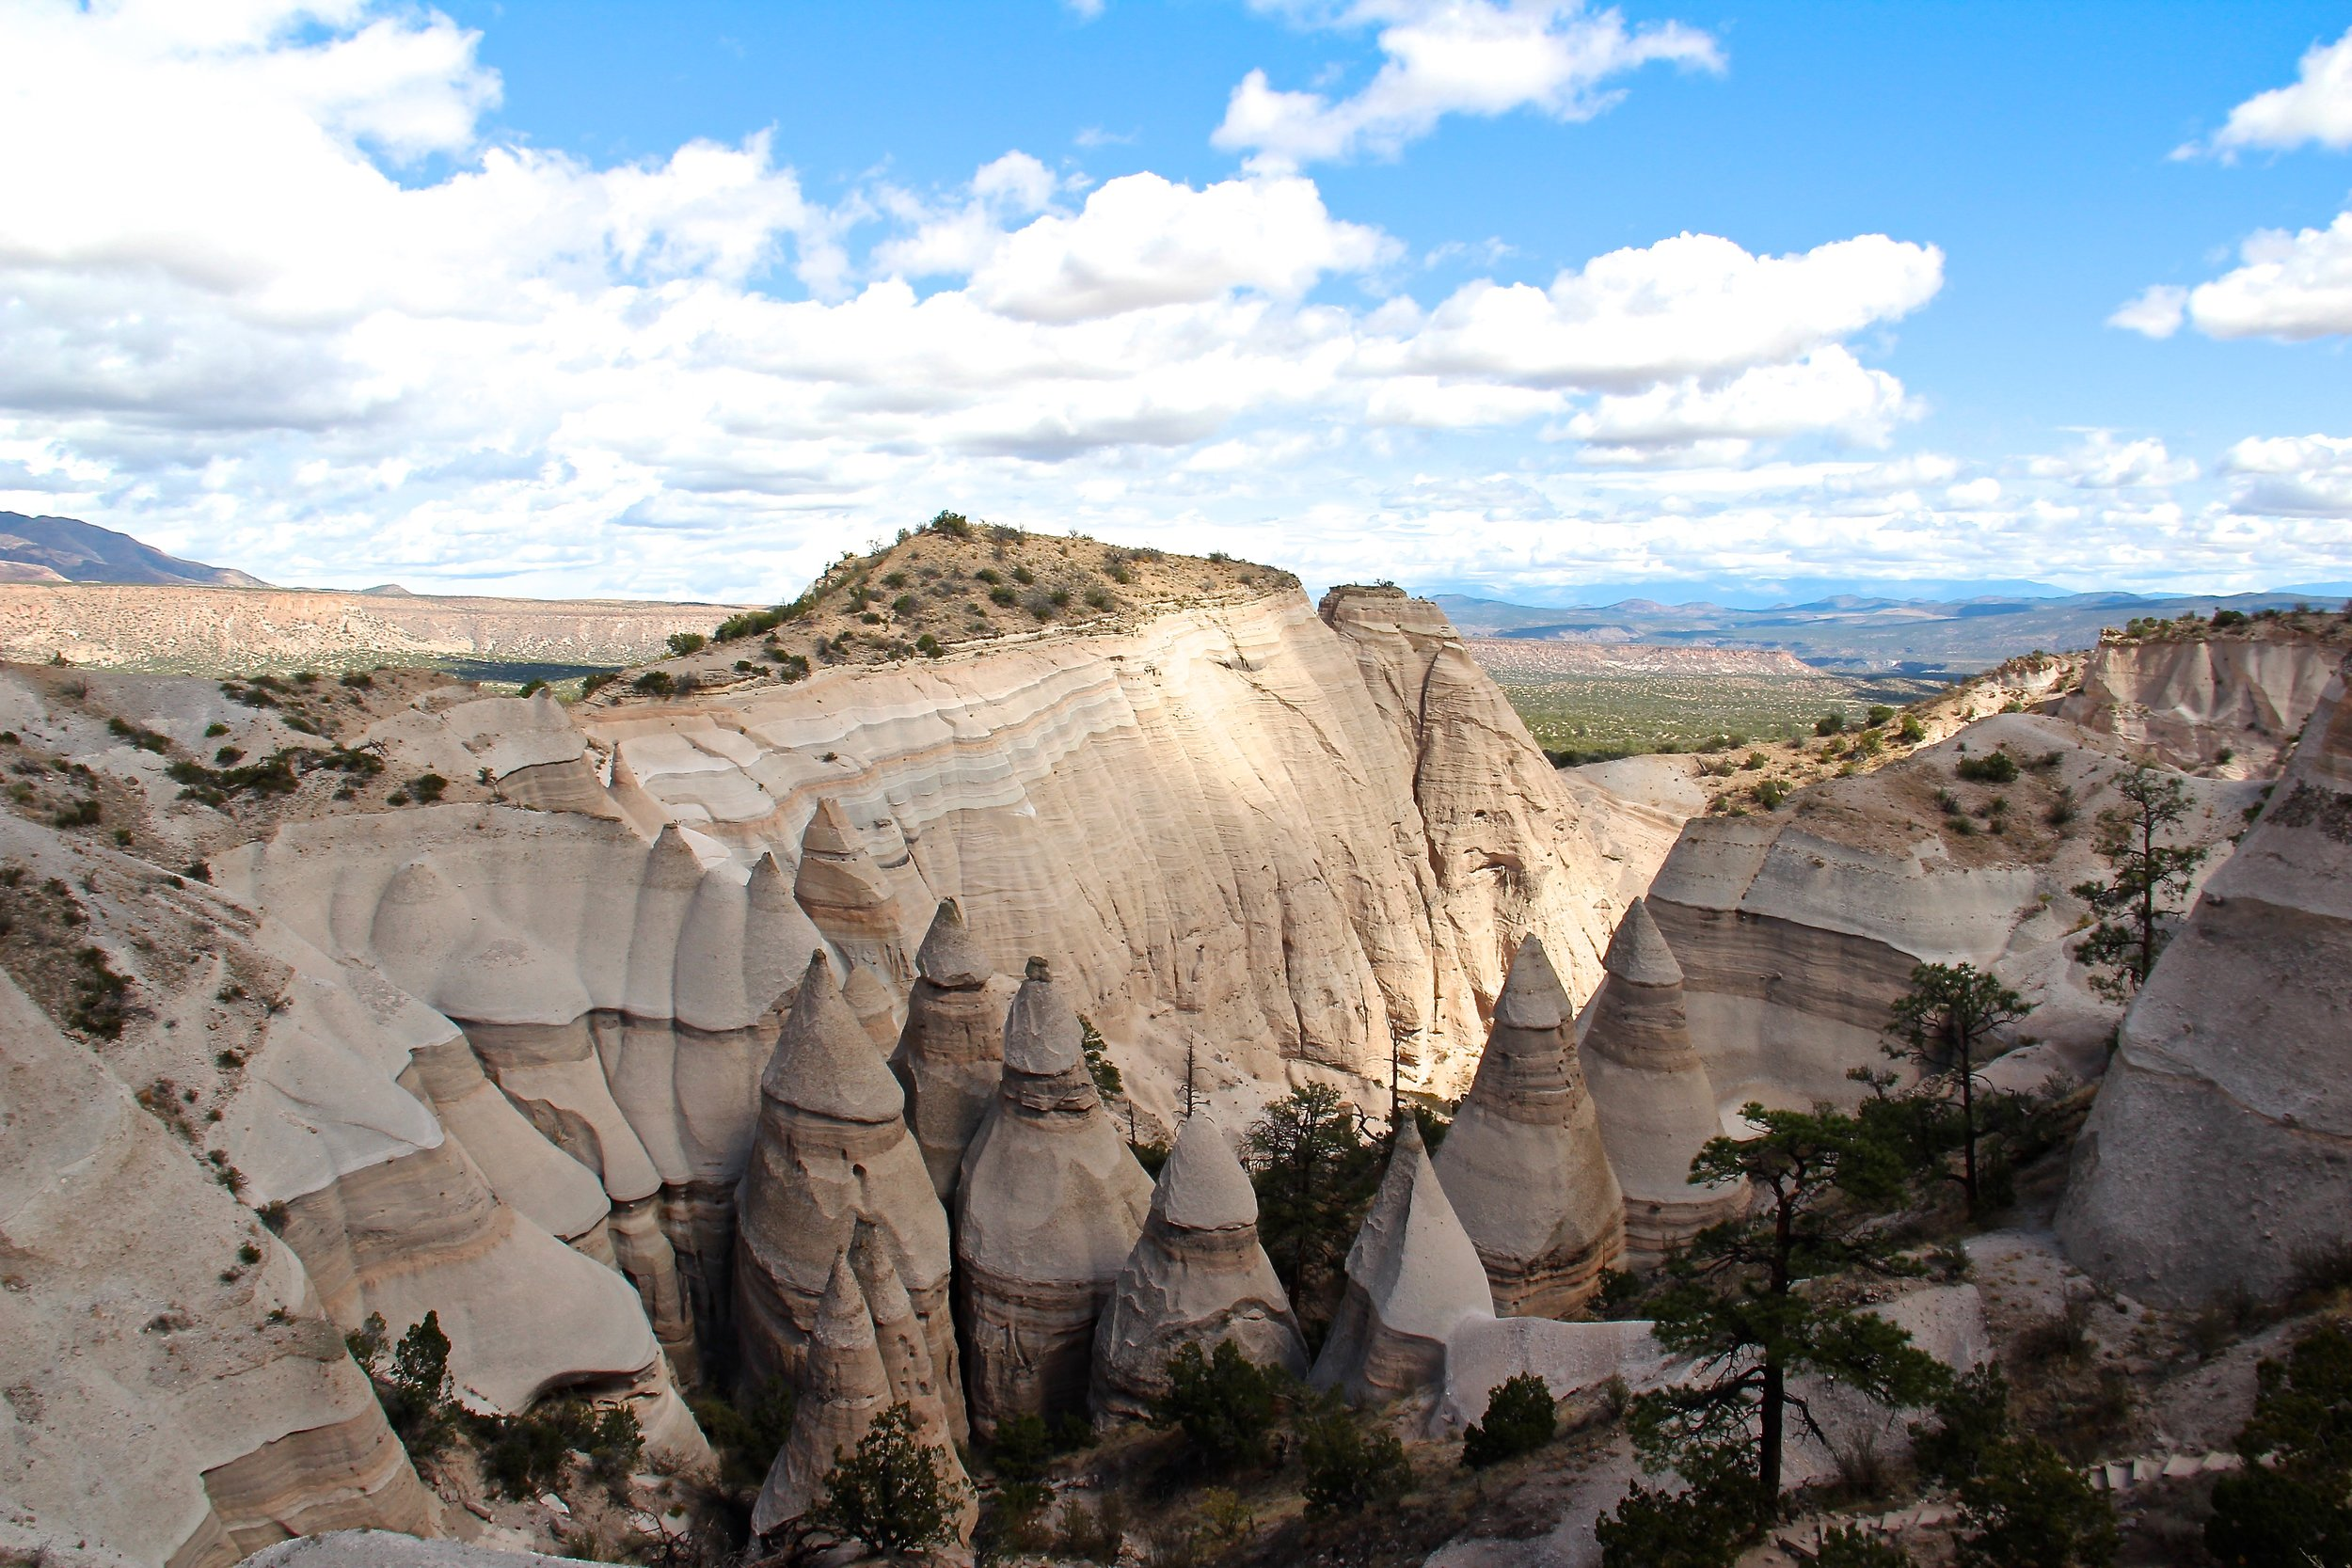 The view from the top of the Slot Canyon hike at Kasha Katuwe Tent Rocks National Monument in New Mexico